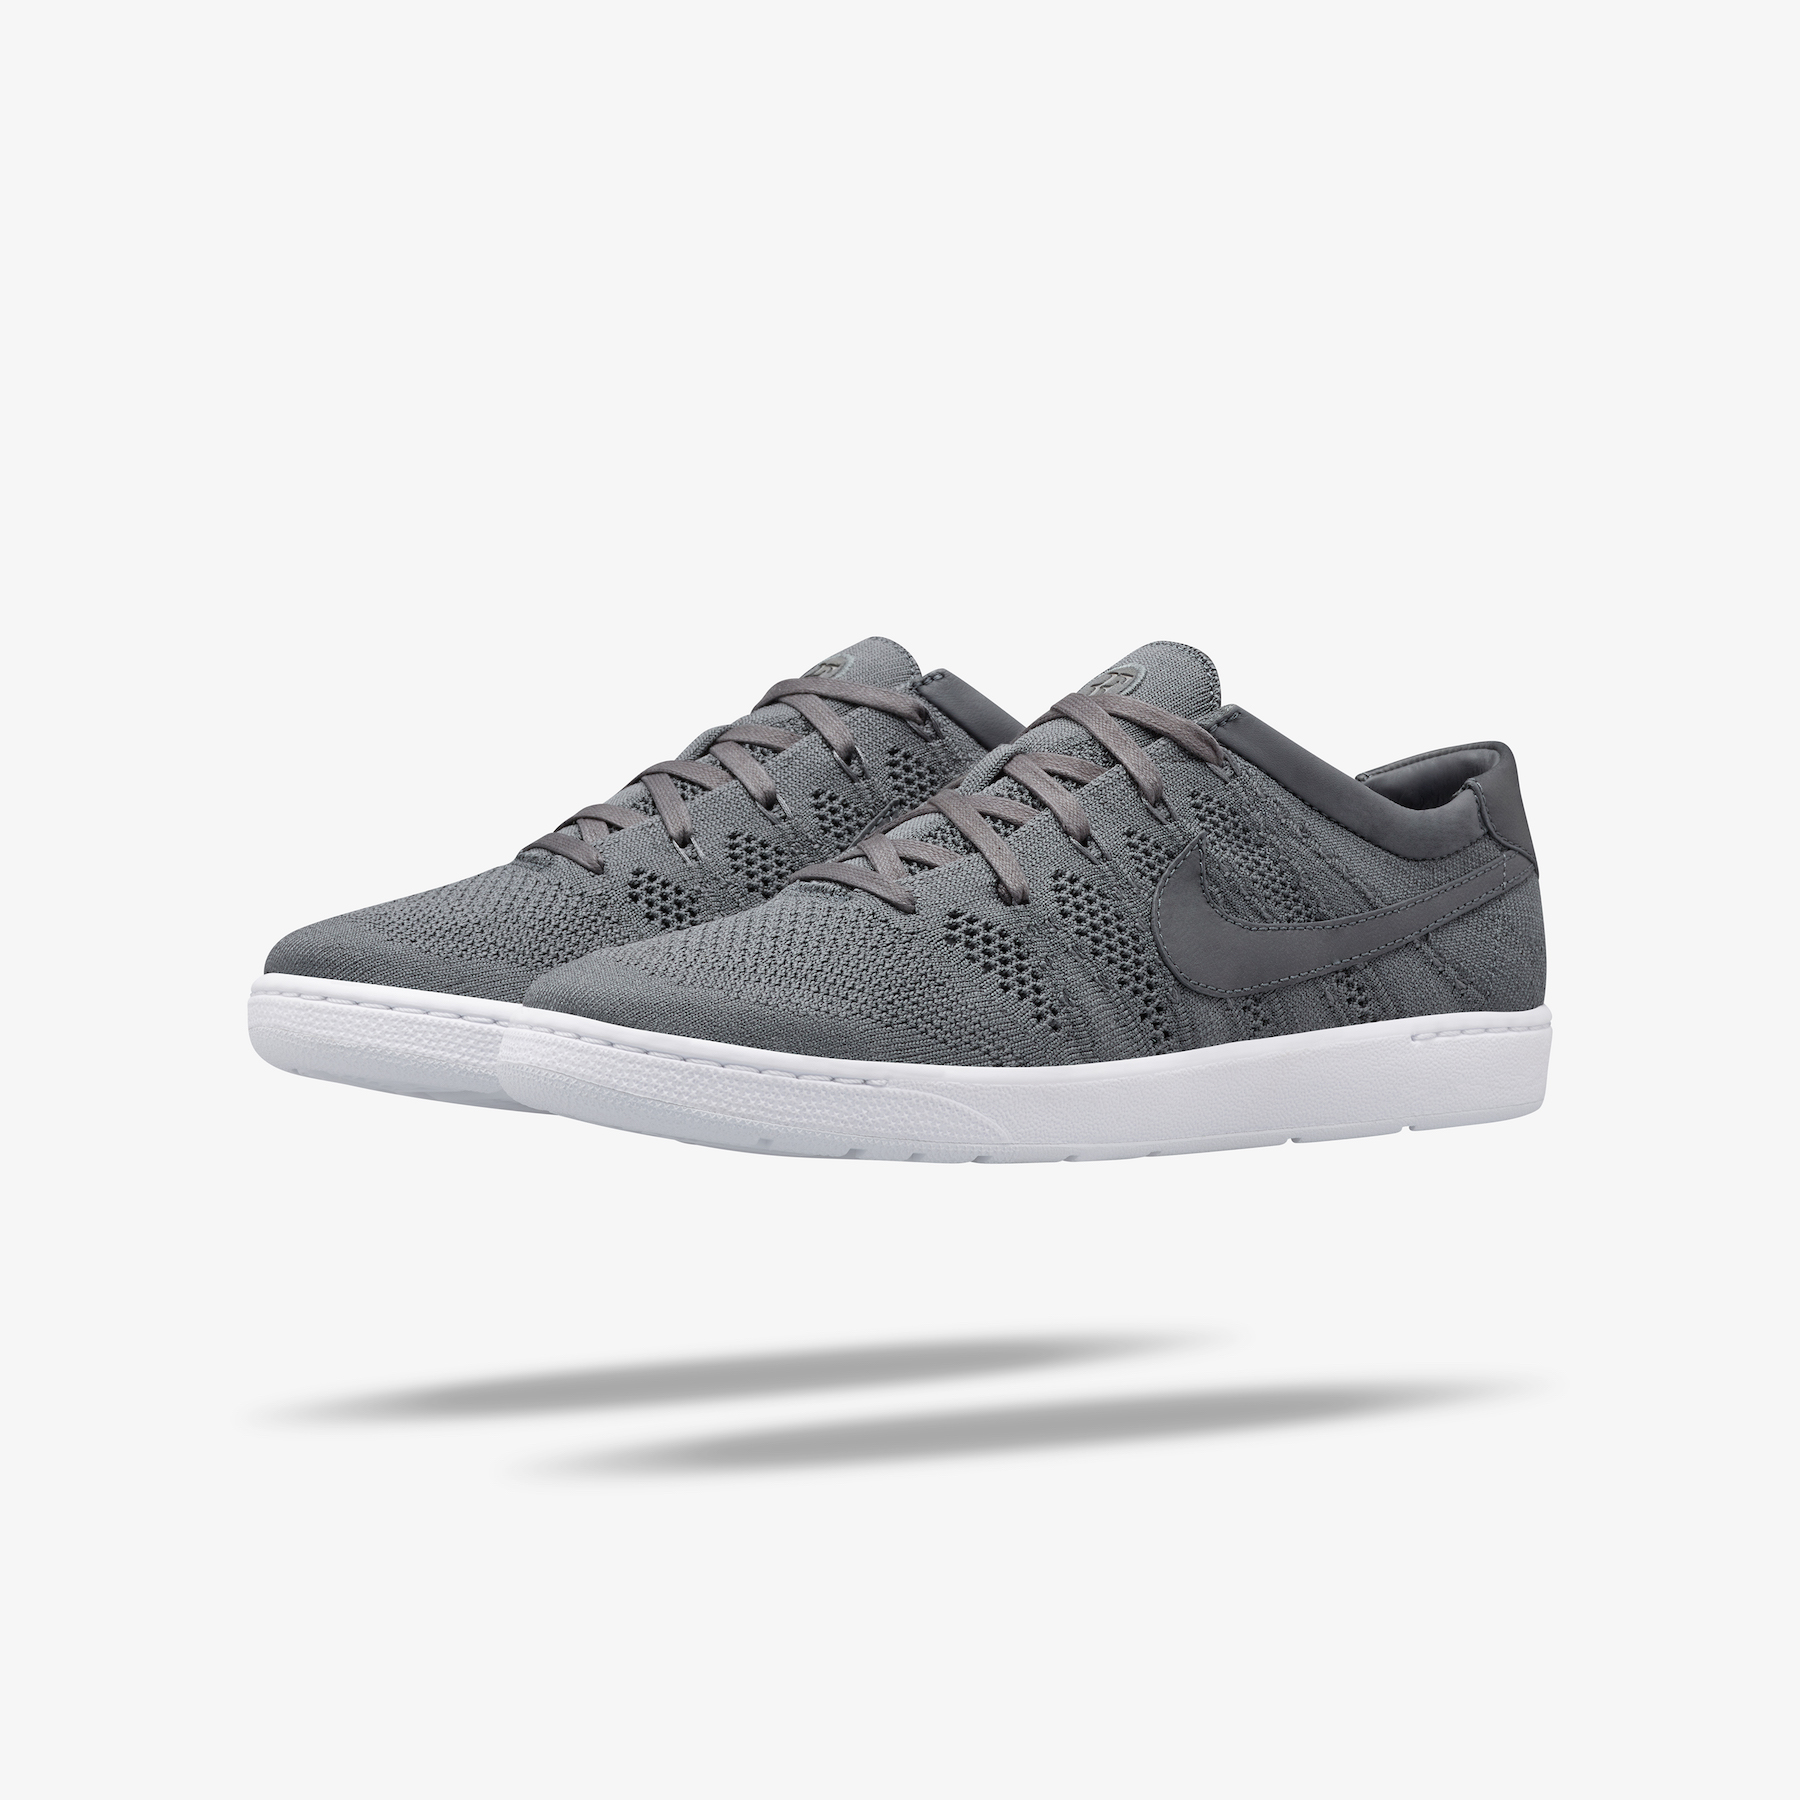 nikecourt x roger federer collection 3